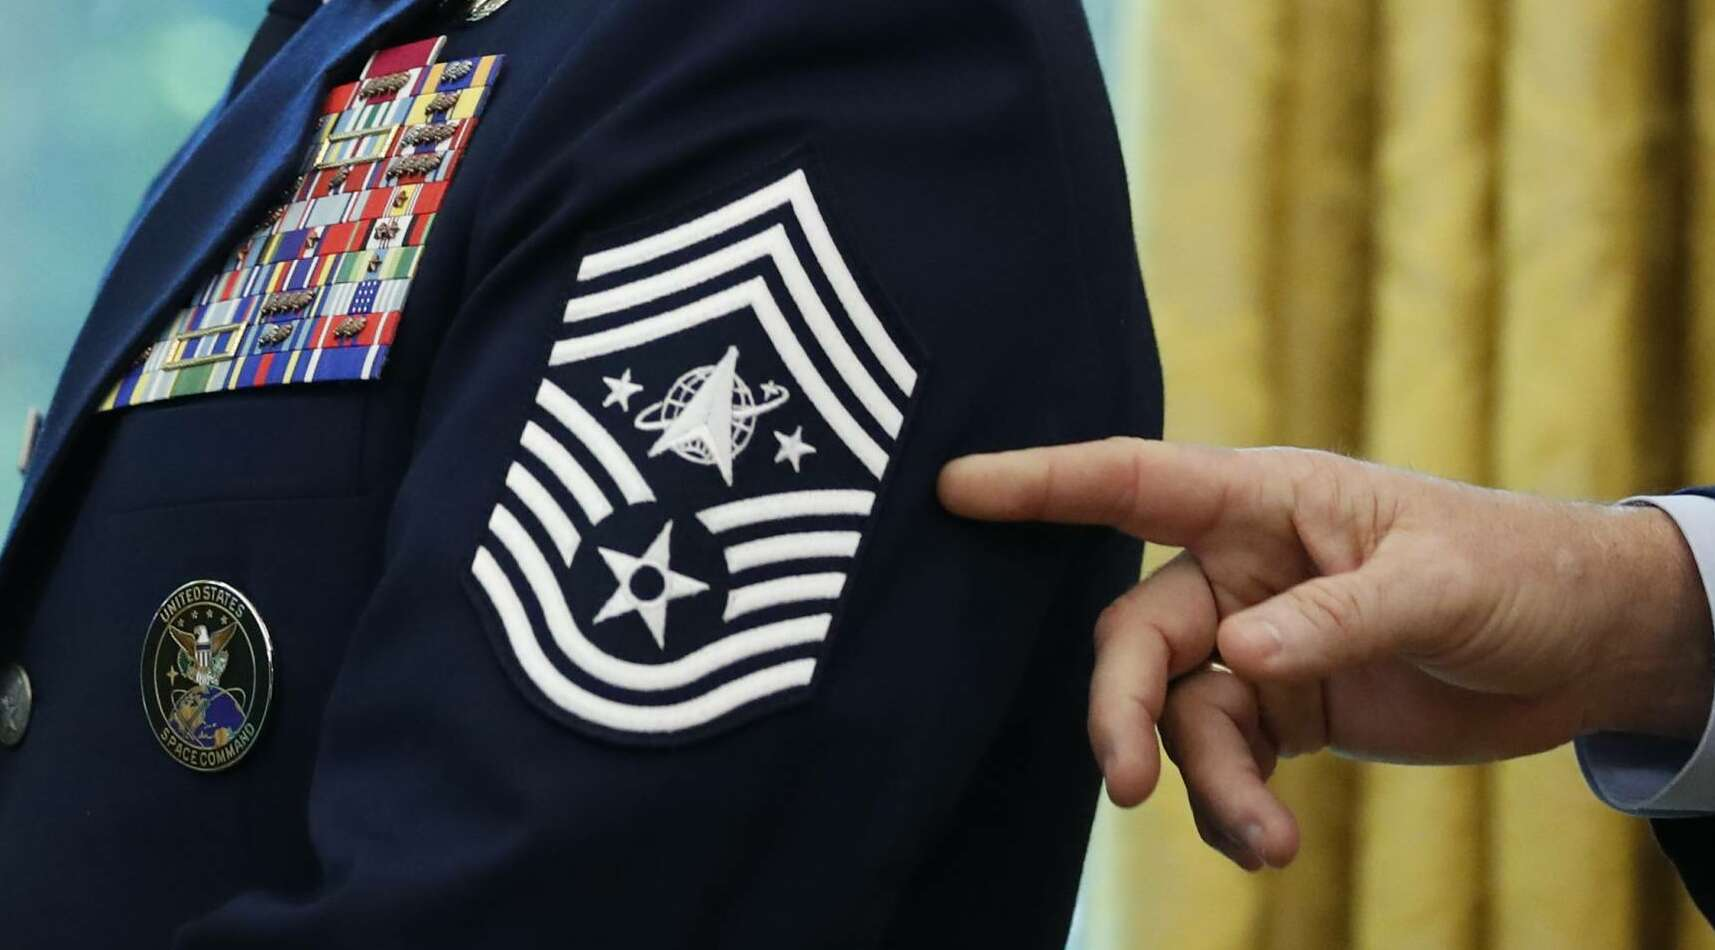 Chief Master Sgt. Roger Towberman displays his insignia during a presentation of the United States Space Force flag in the Oval Office of the White House, Friday, May 15, 2020, in Washington. (AP Photo/Alex Brandon)